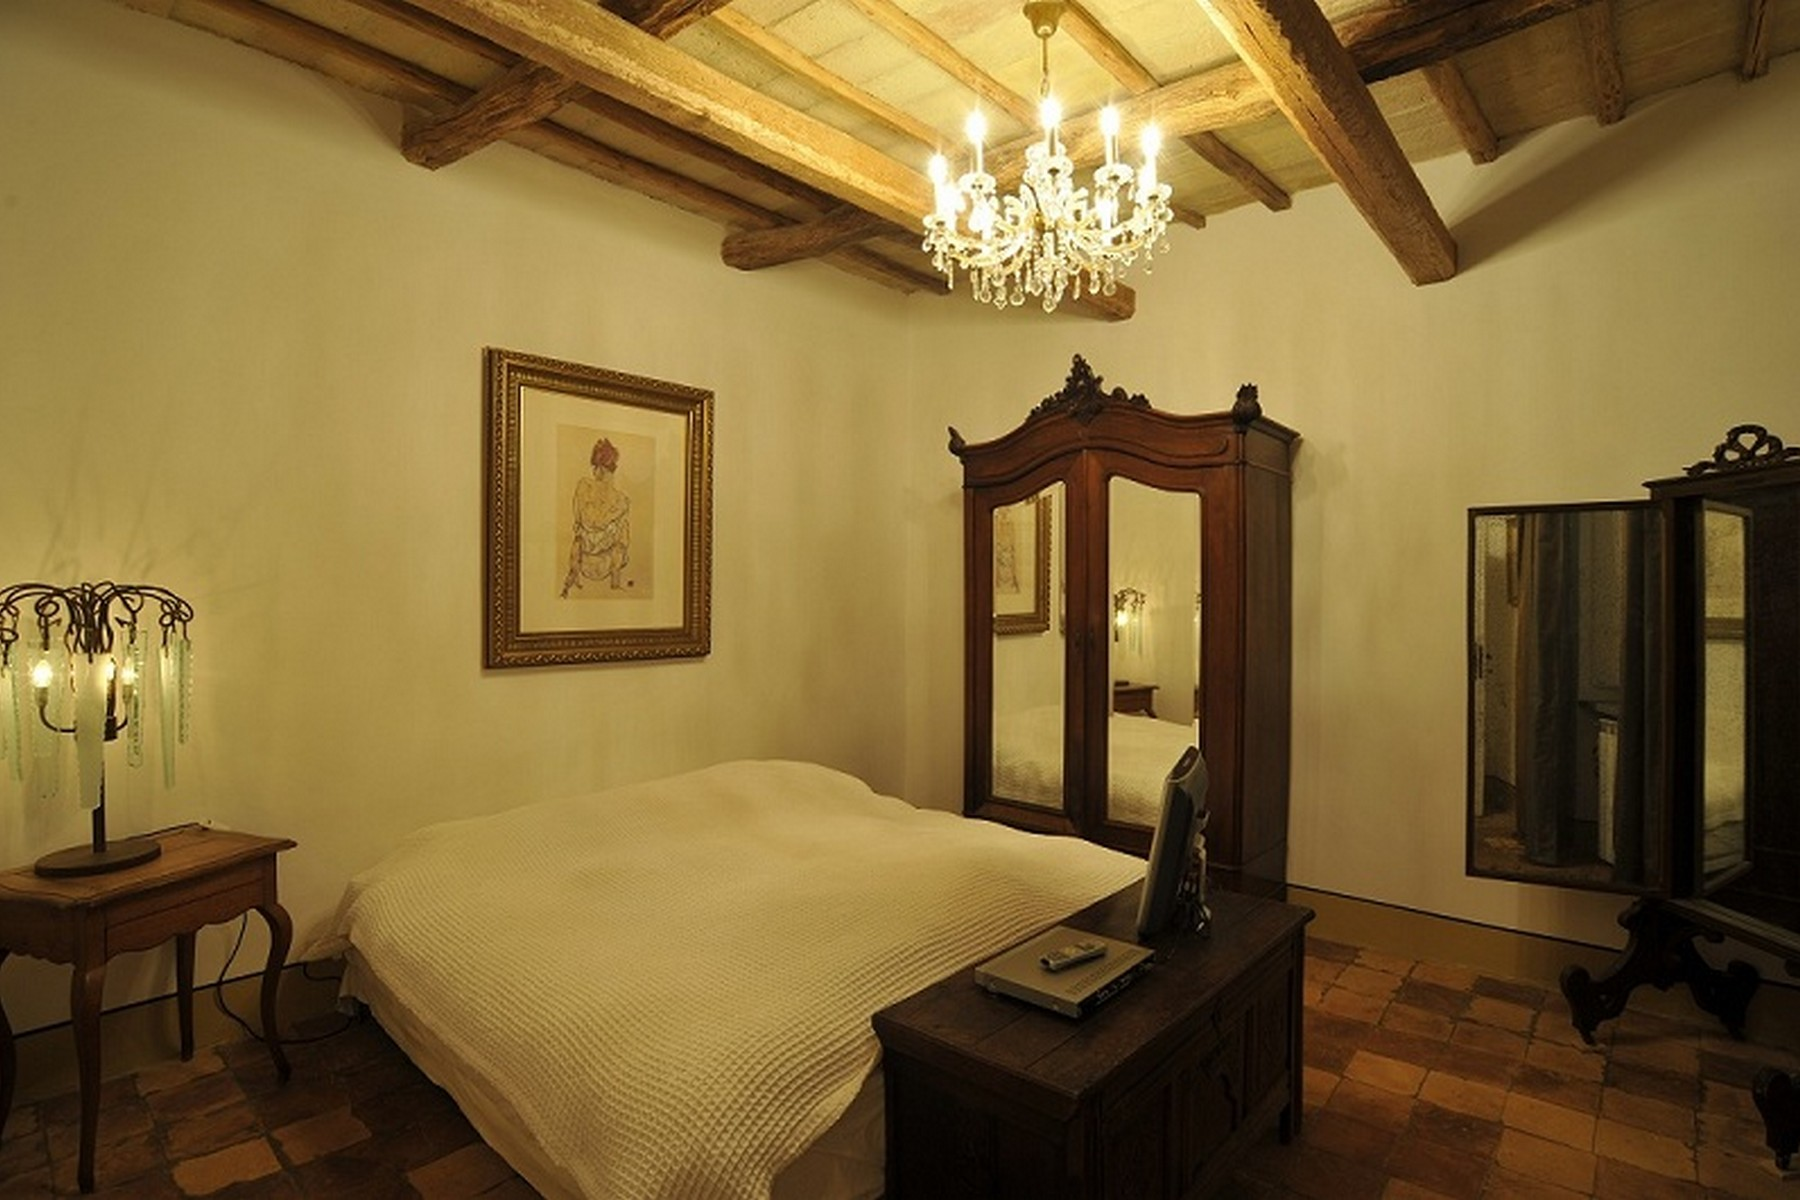 Additional photo for property listing at Charming villa in roman coutryside Strada San Sebastiano Fianello, Rieti 02040 Italia